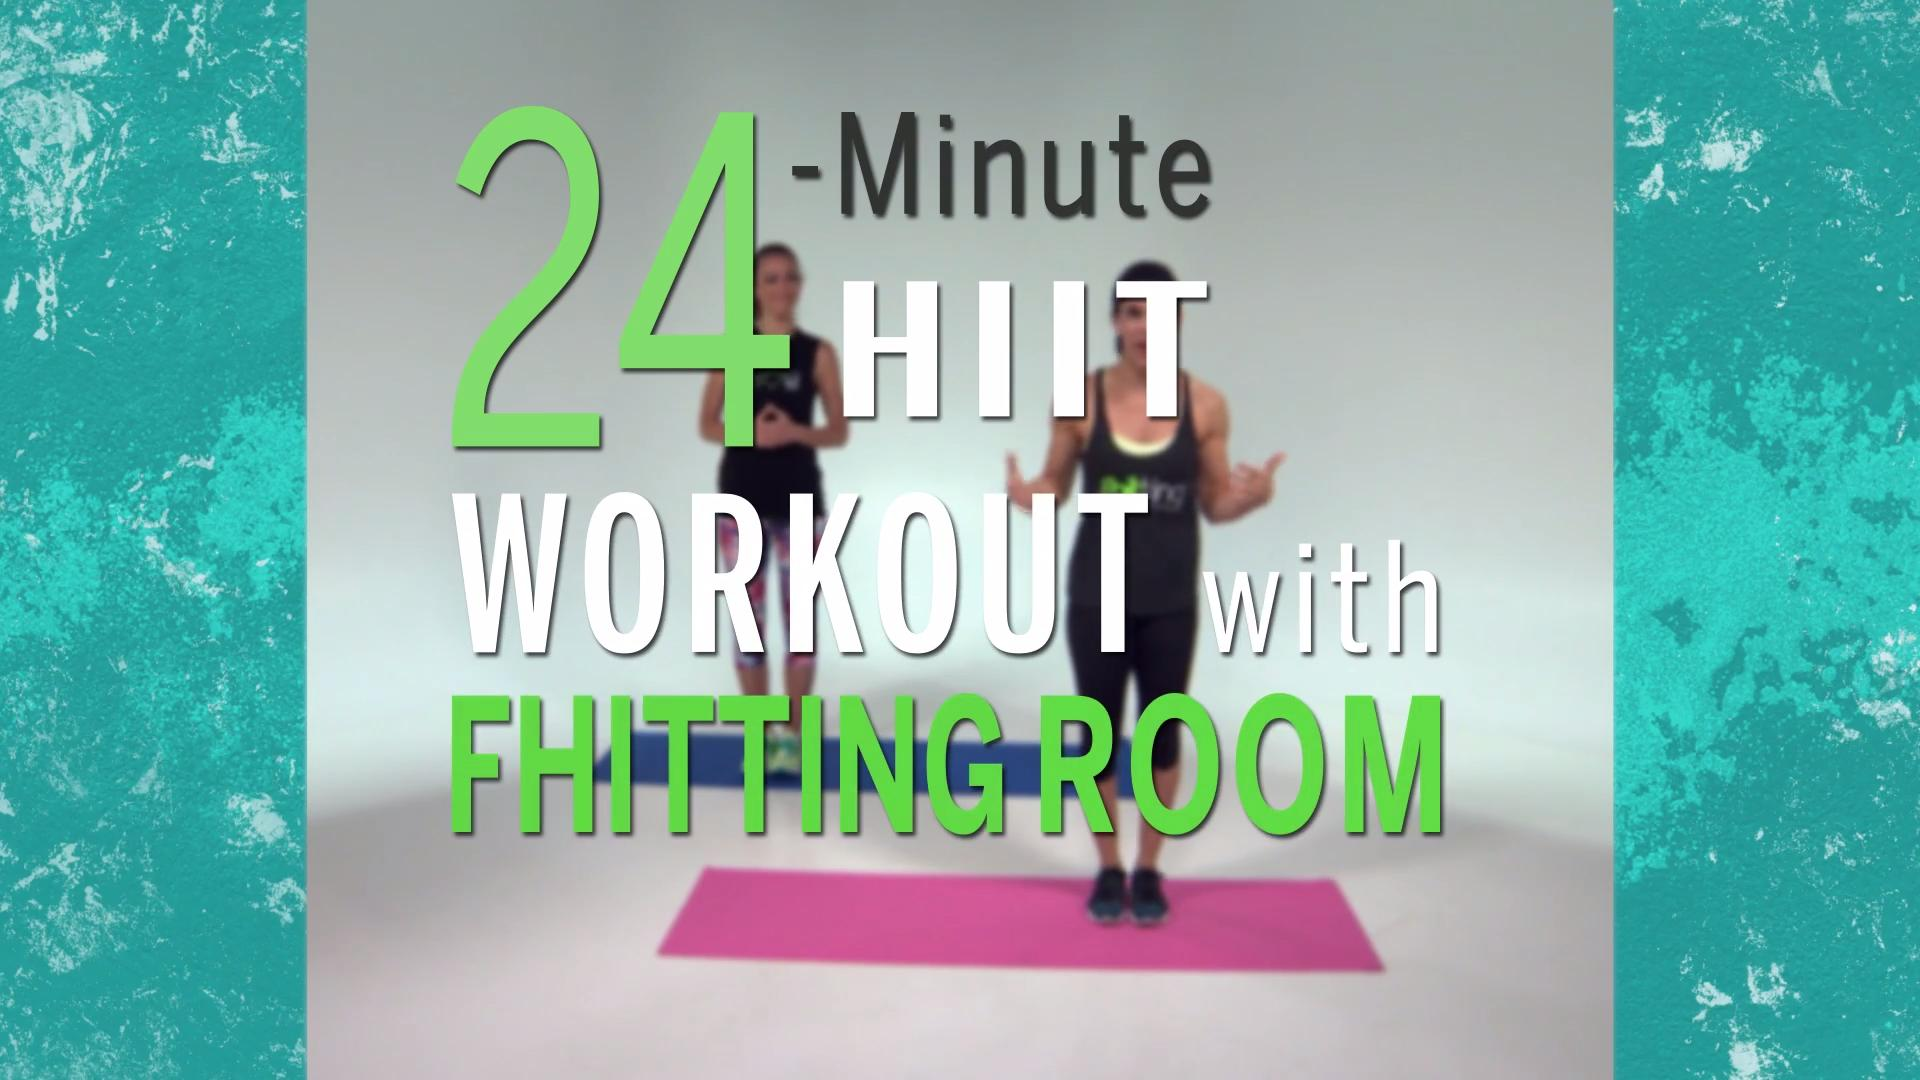 Try This Calorie-Torching HIIT Workout From the Fhitting Room